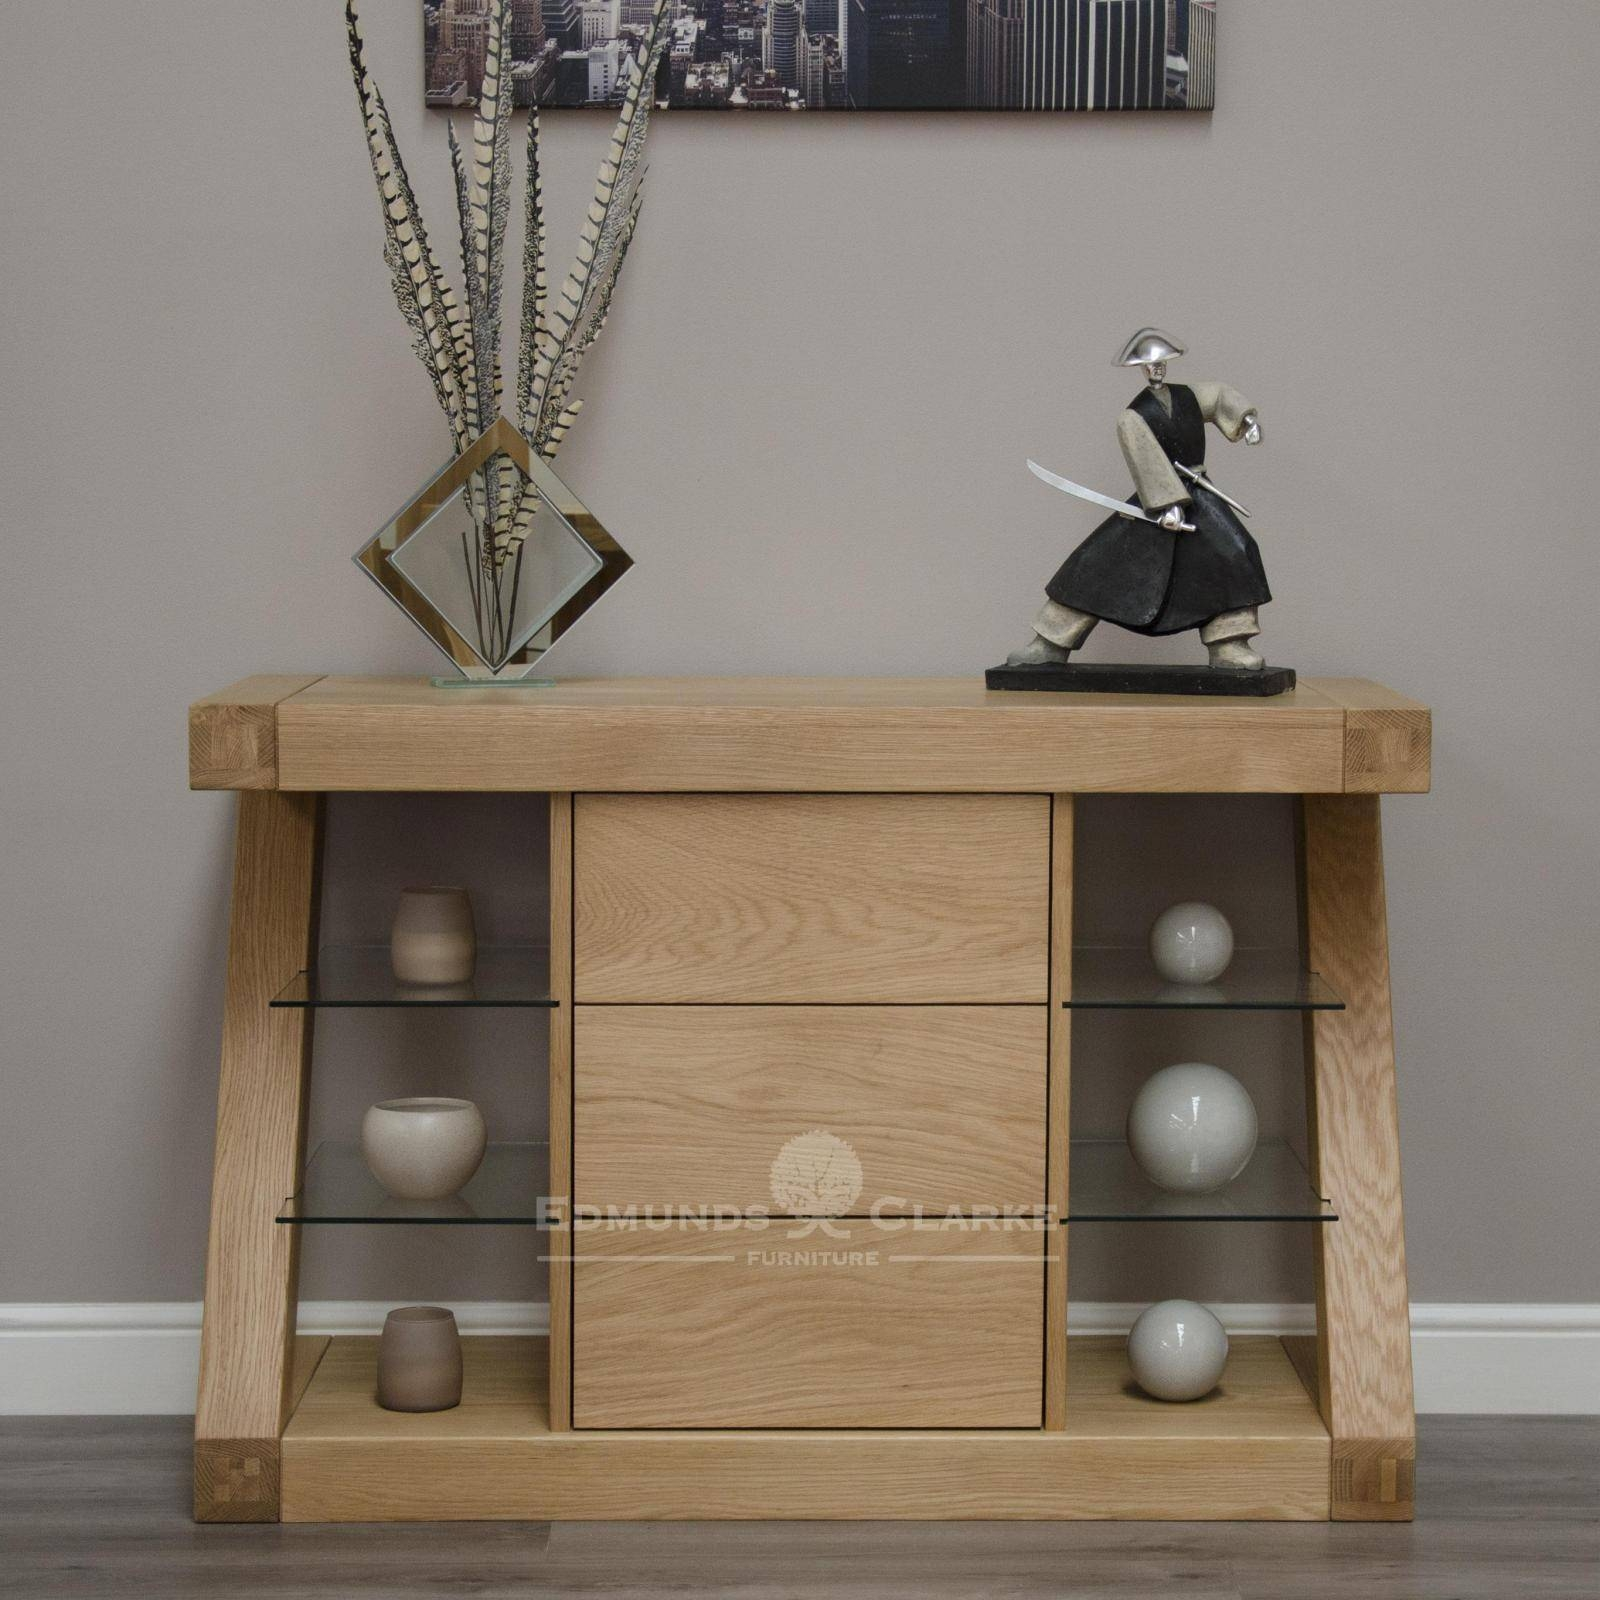 Designer Solid Oak Small Sideboard - Oak Sideboards For The throughout Lounge Sideboards (Image 4 of 15)